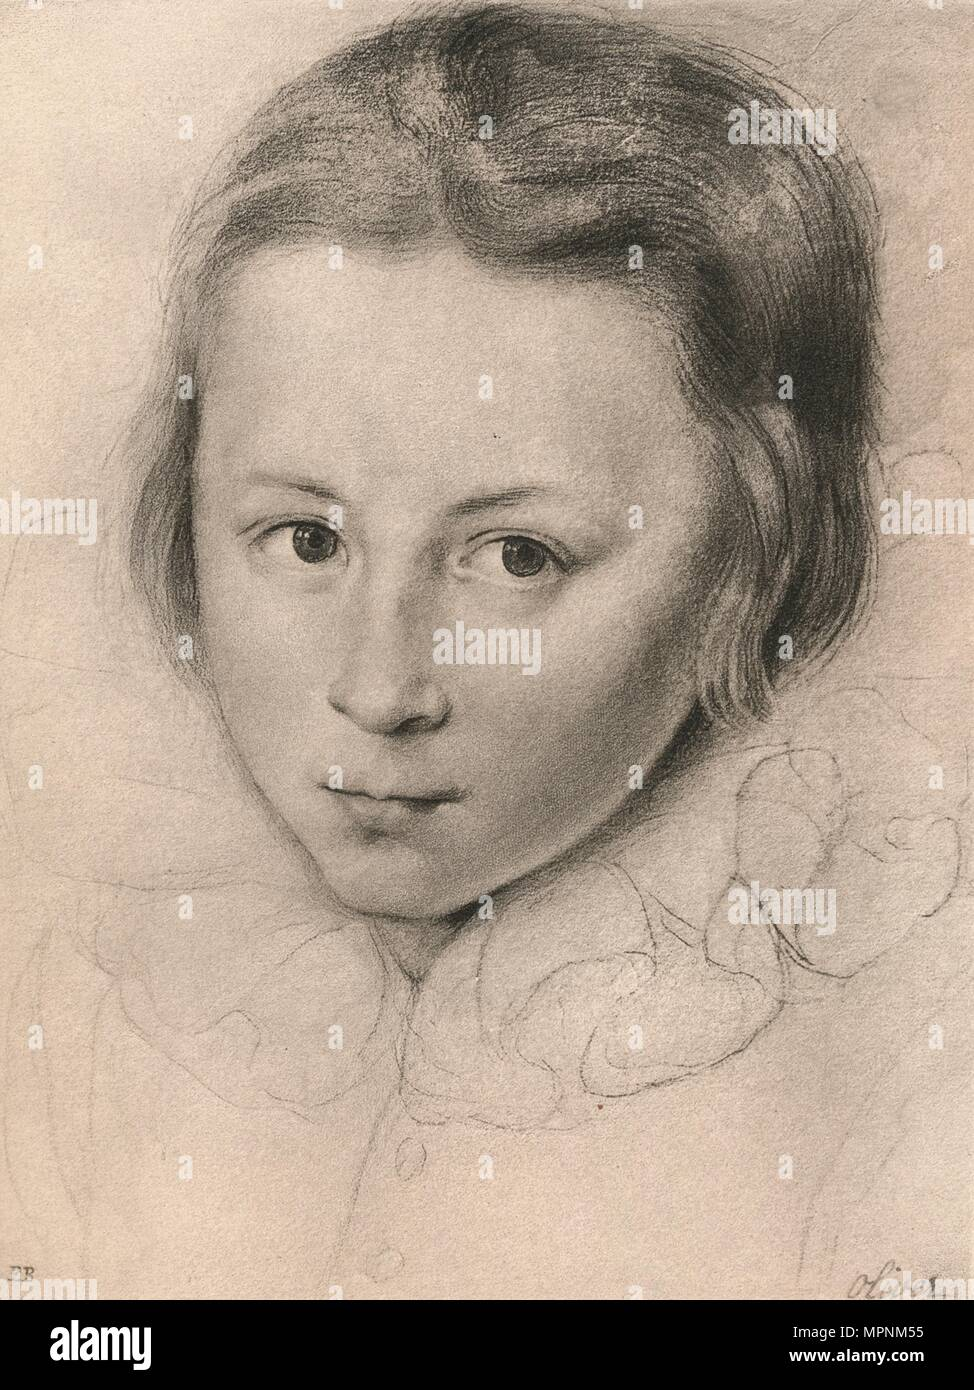 'Henry, Prince of Wales', c16th century, (1904). Artist: Isaac Oliver I. - Stock Image